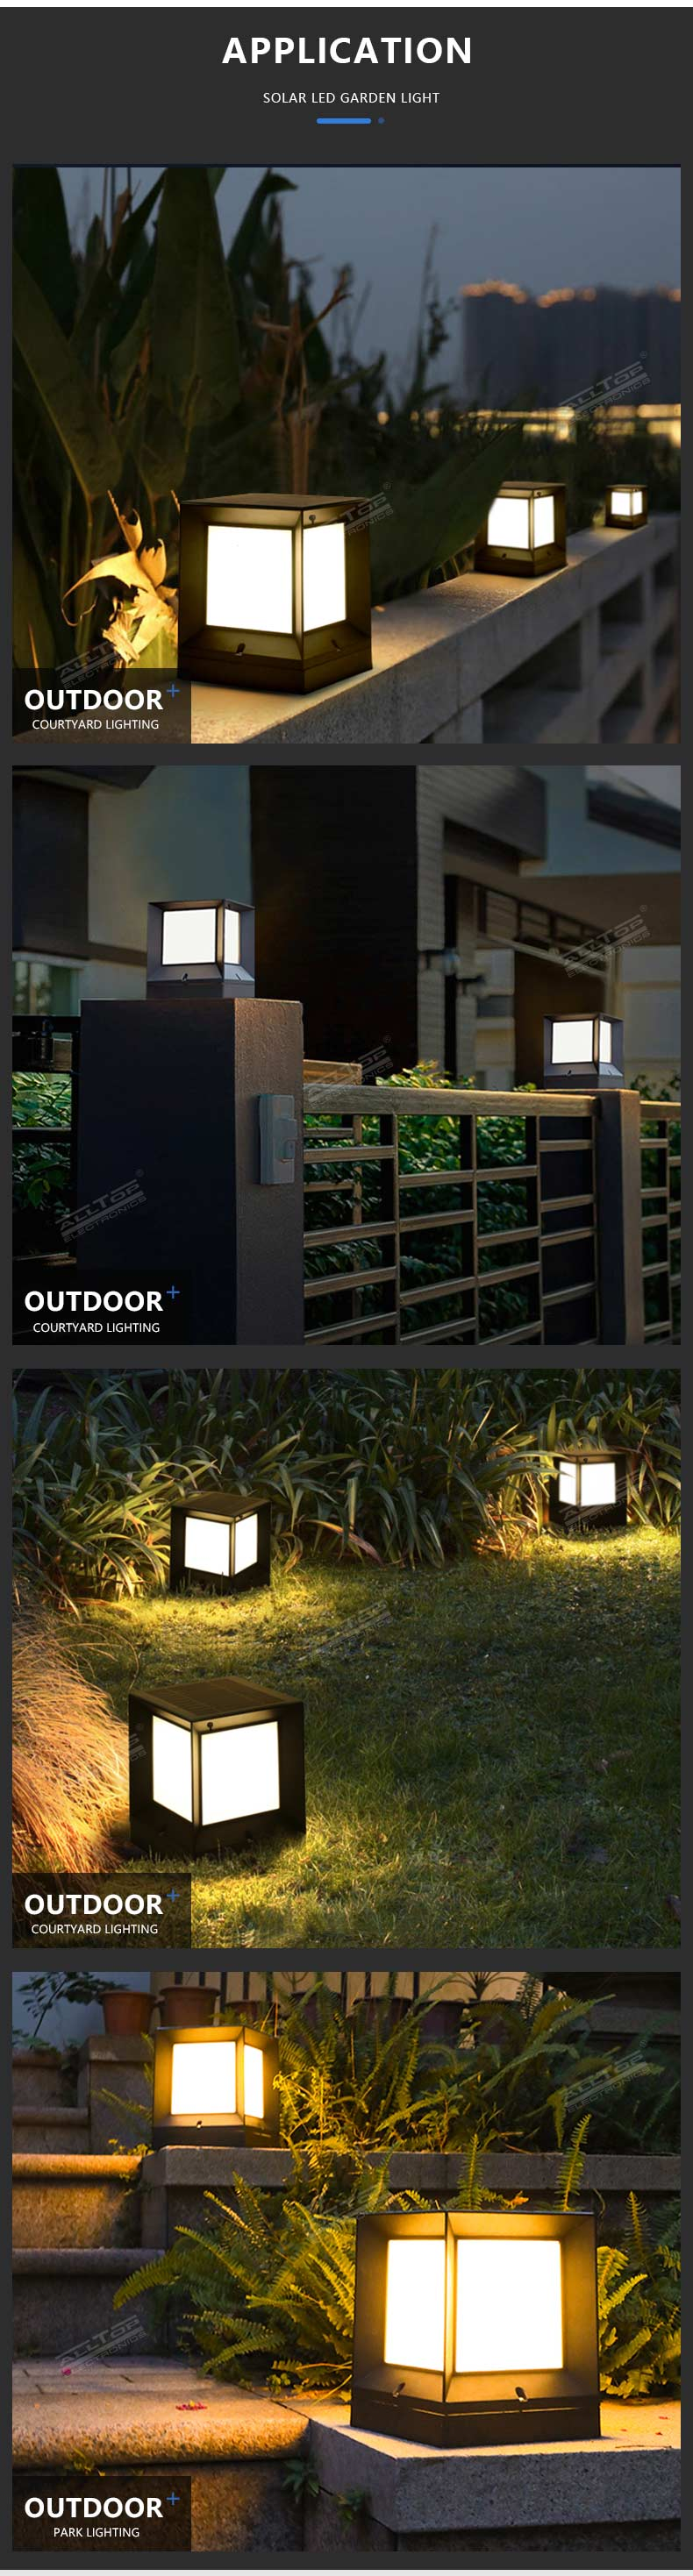 ALLTOP high end solar landscape lights-15